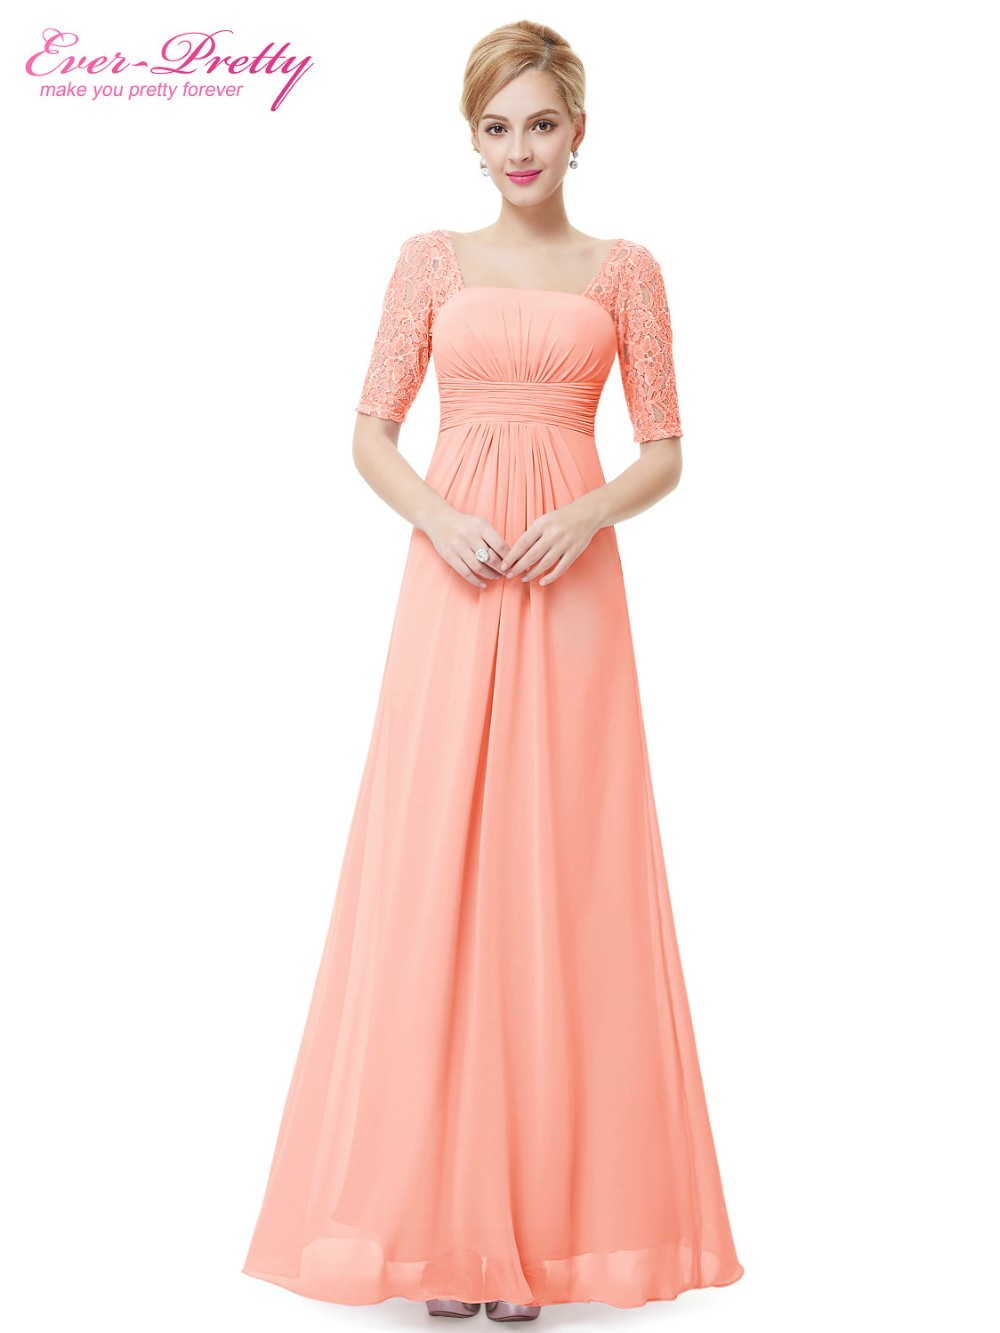 Compare Prices on Events Evening Dresses- Online Shopping/Buy Low ...